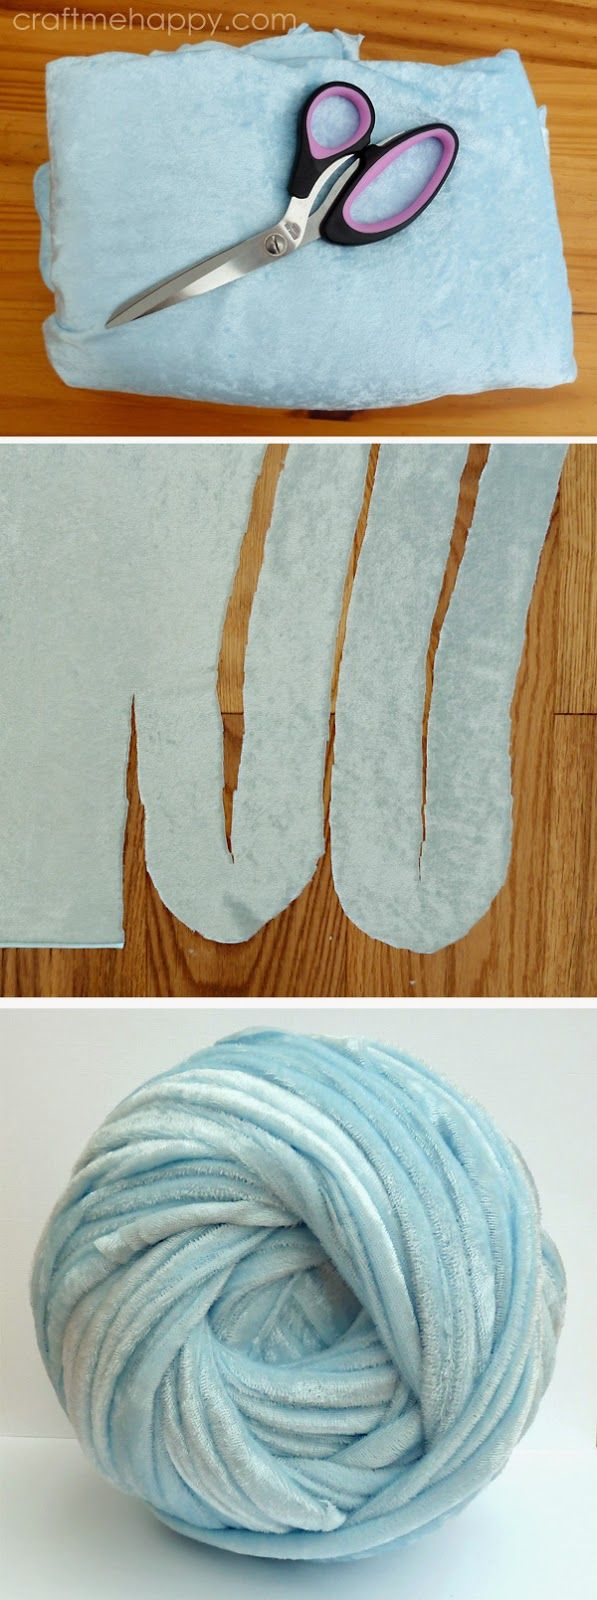 Make super chunky yarn from fabric!